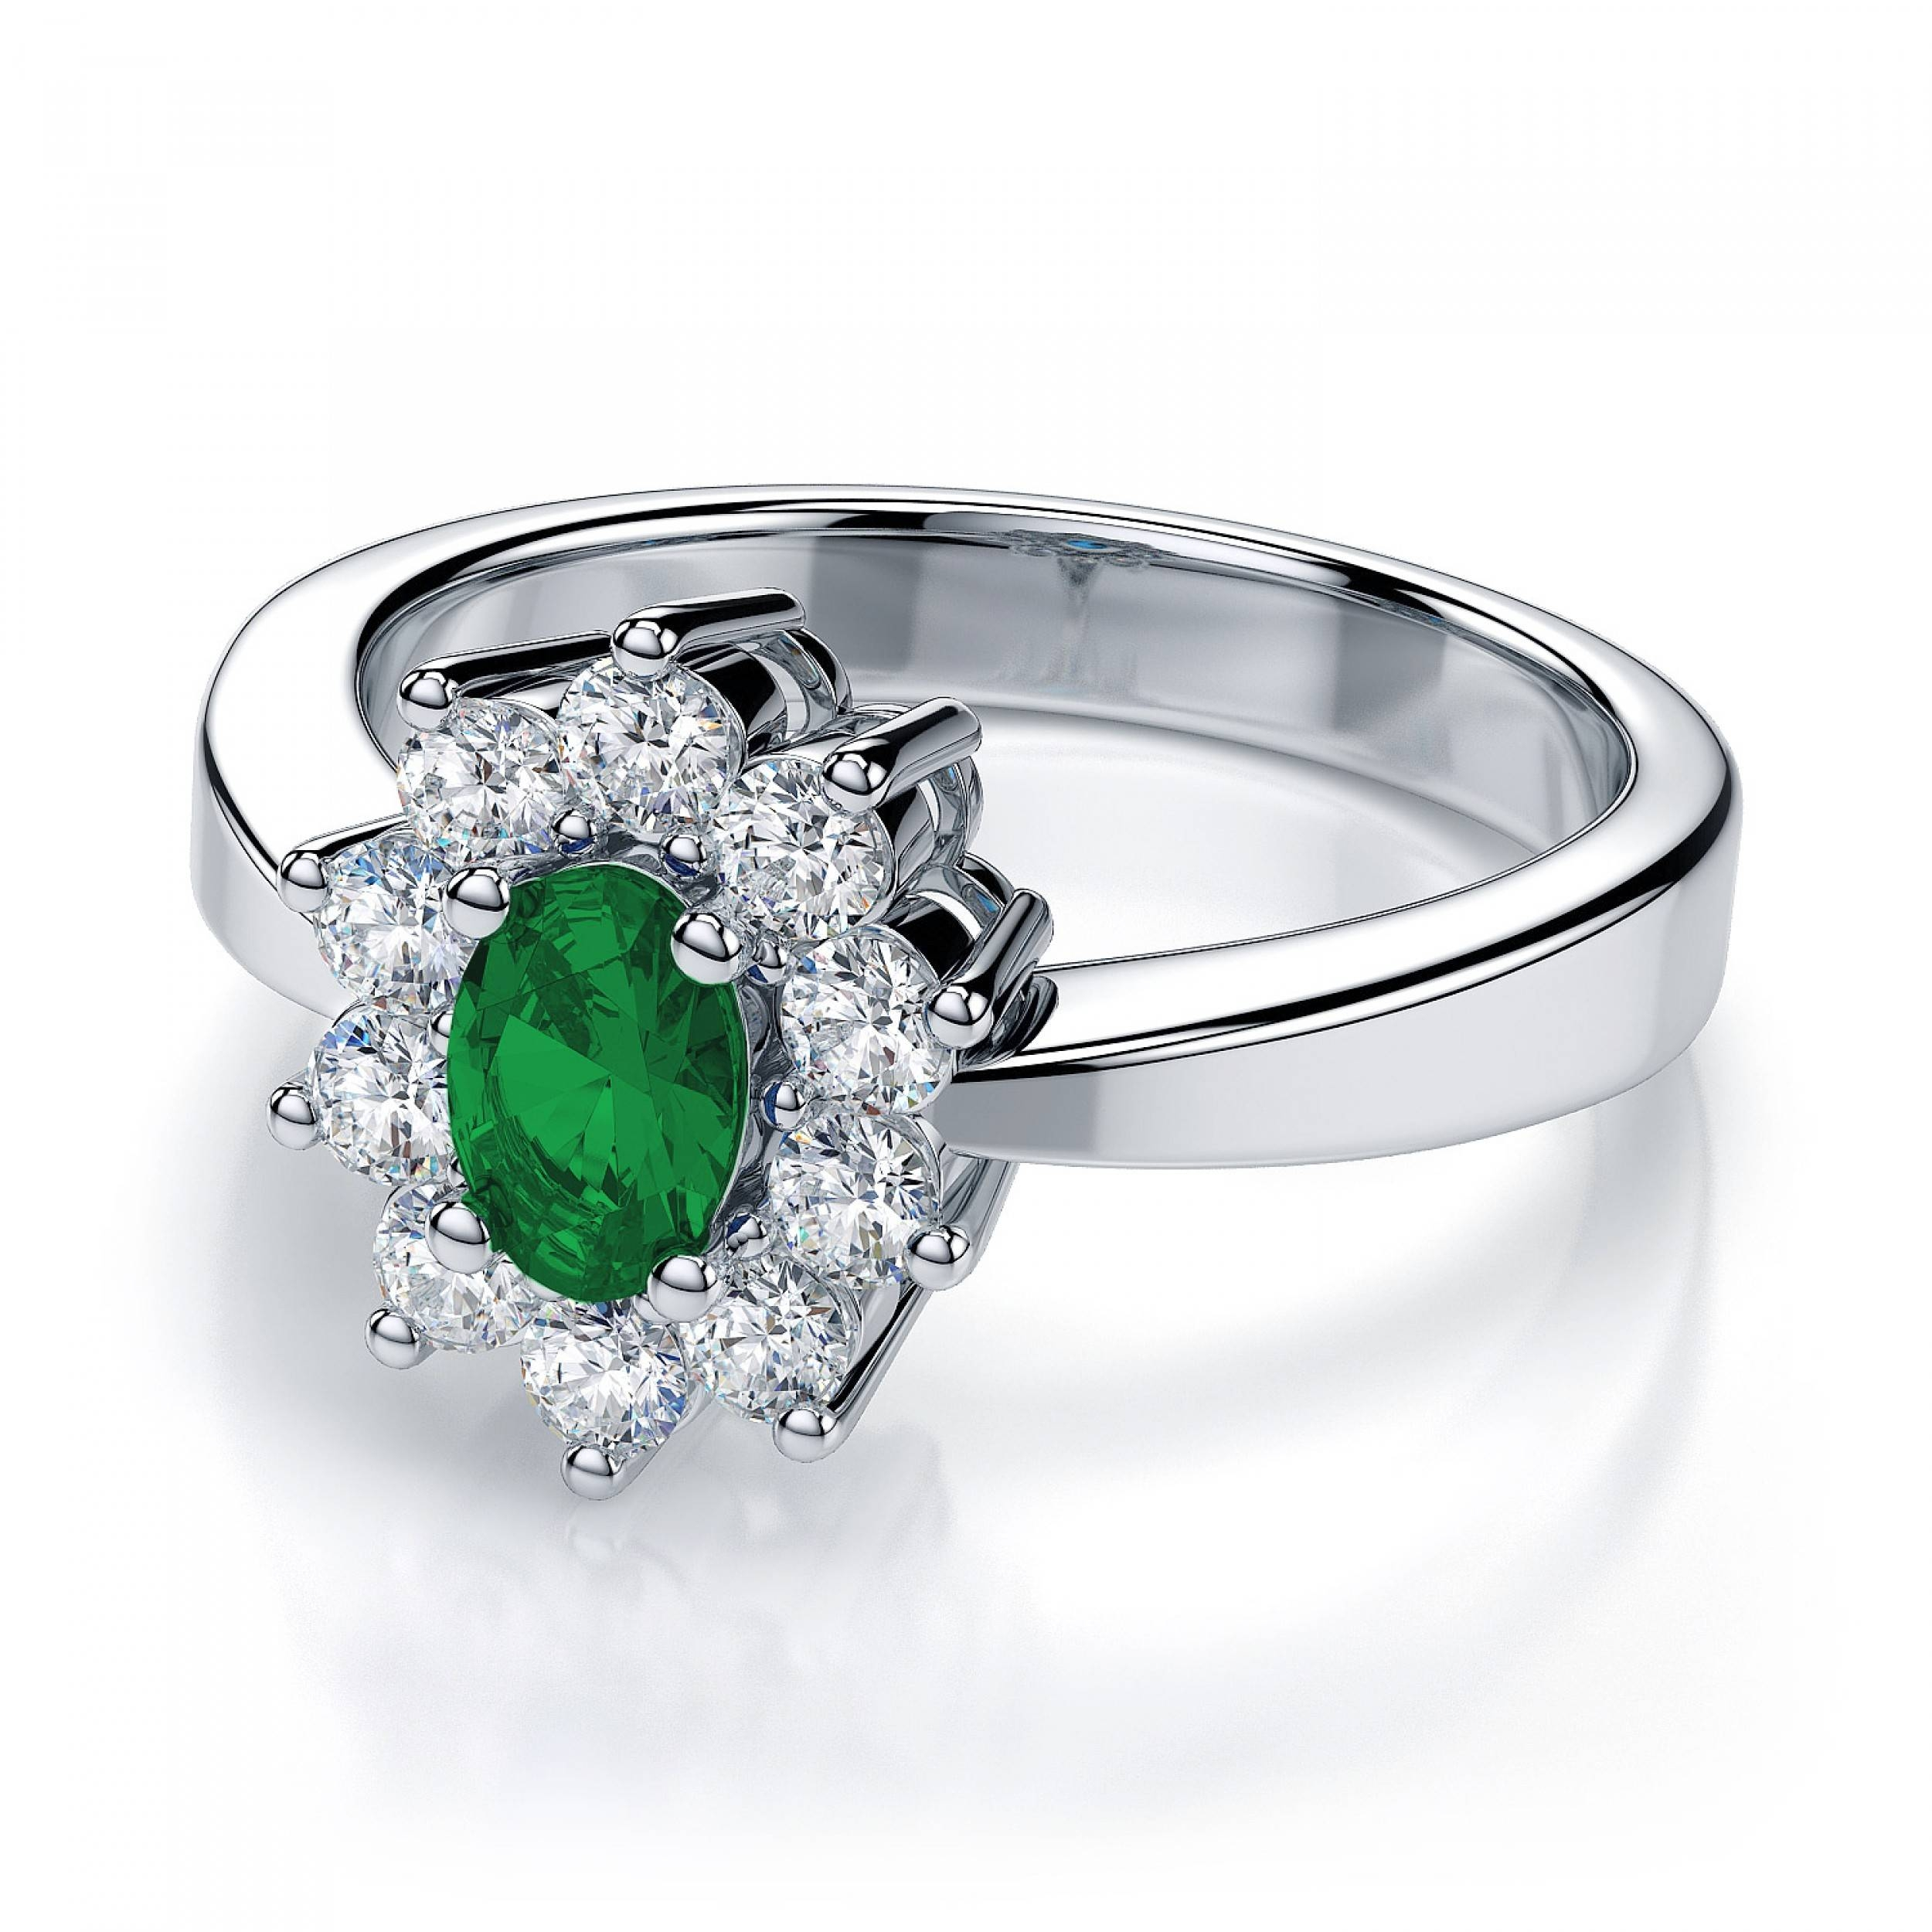 oval emerald campbell jewellers cluster ring goldsmiths white gold master diamond products